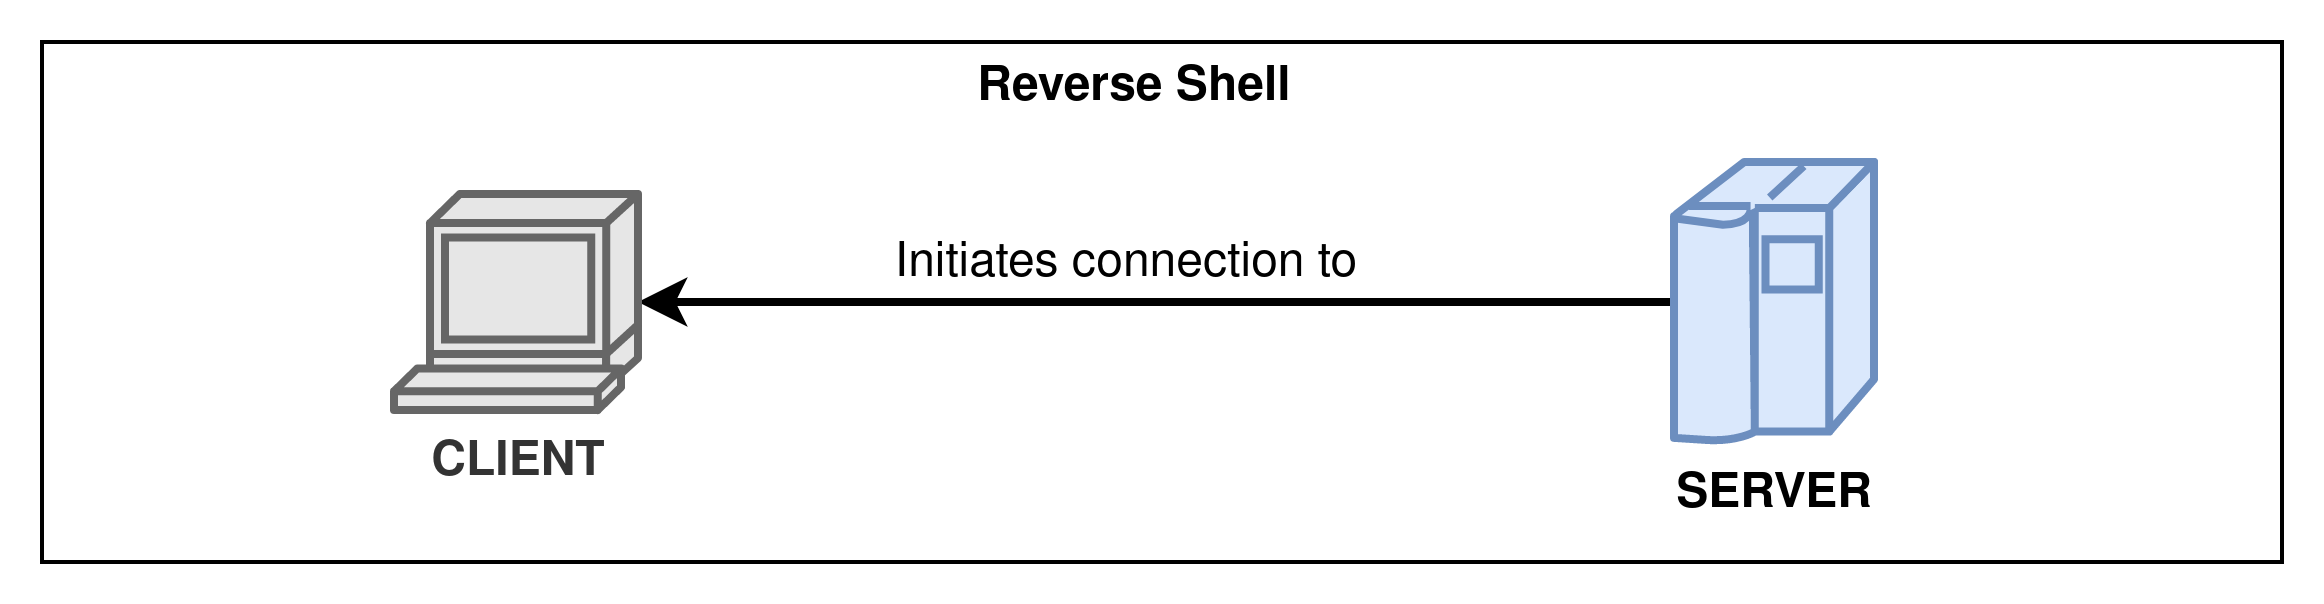 Reverse shell connection scheme